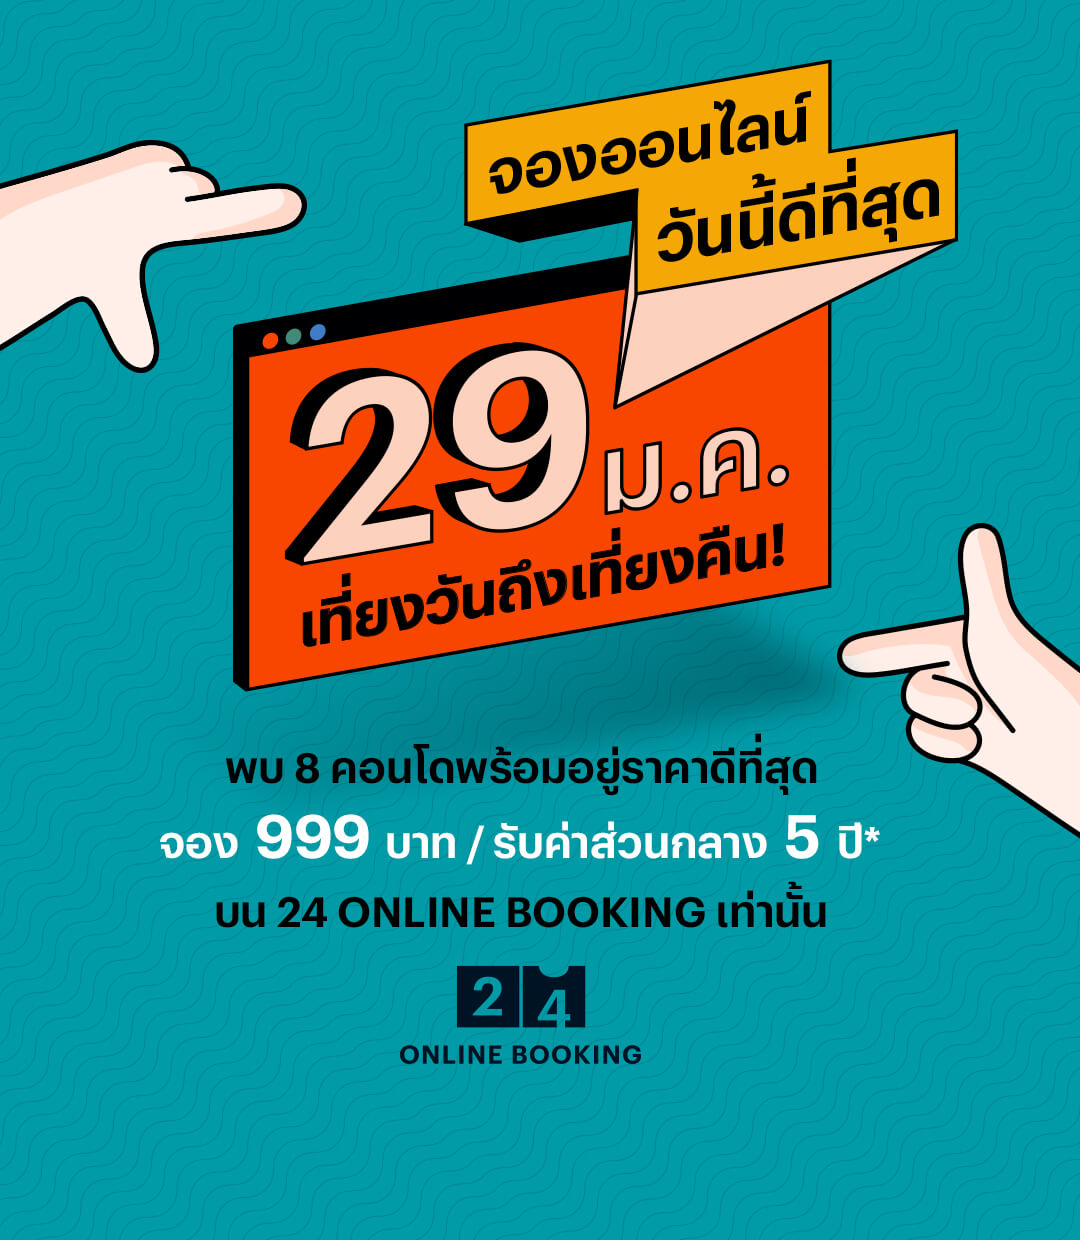 online booking campaign 2021